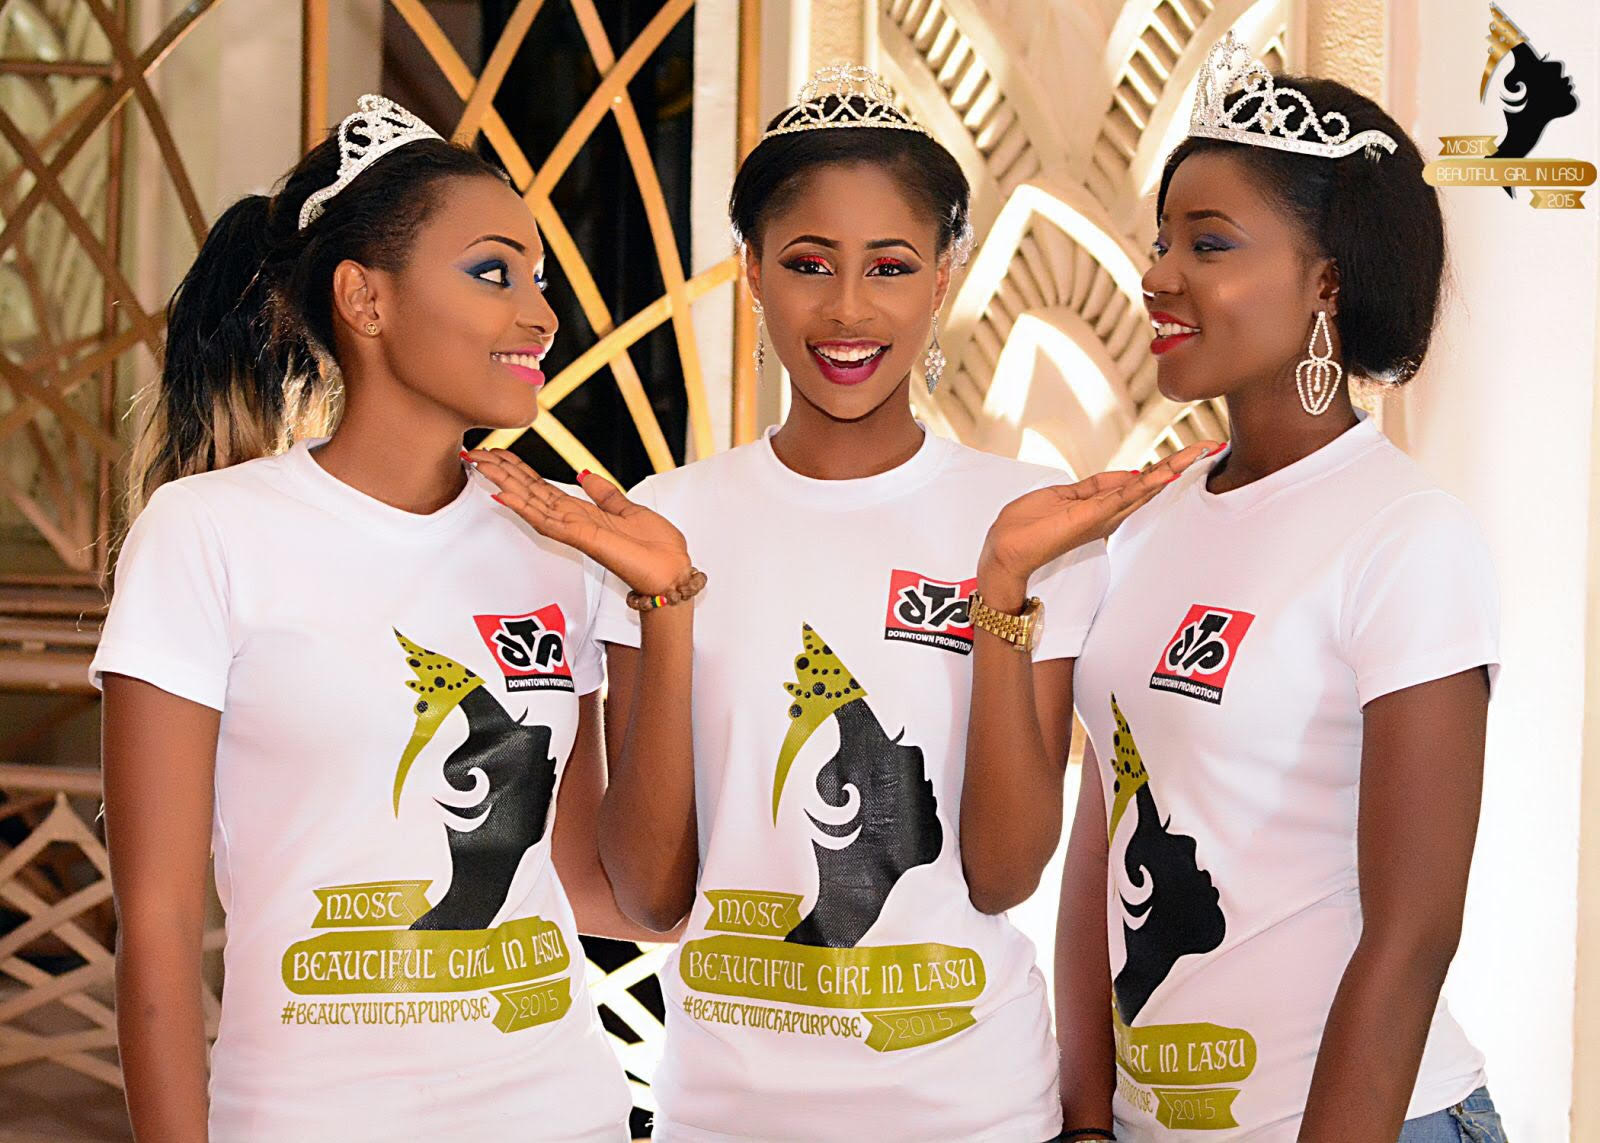 {filename}-Top 10 Universities In Nigeria With The Most Beautiful Girls